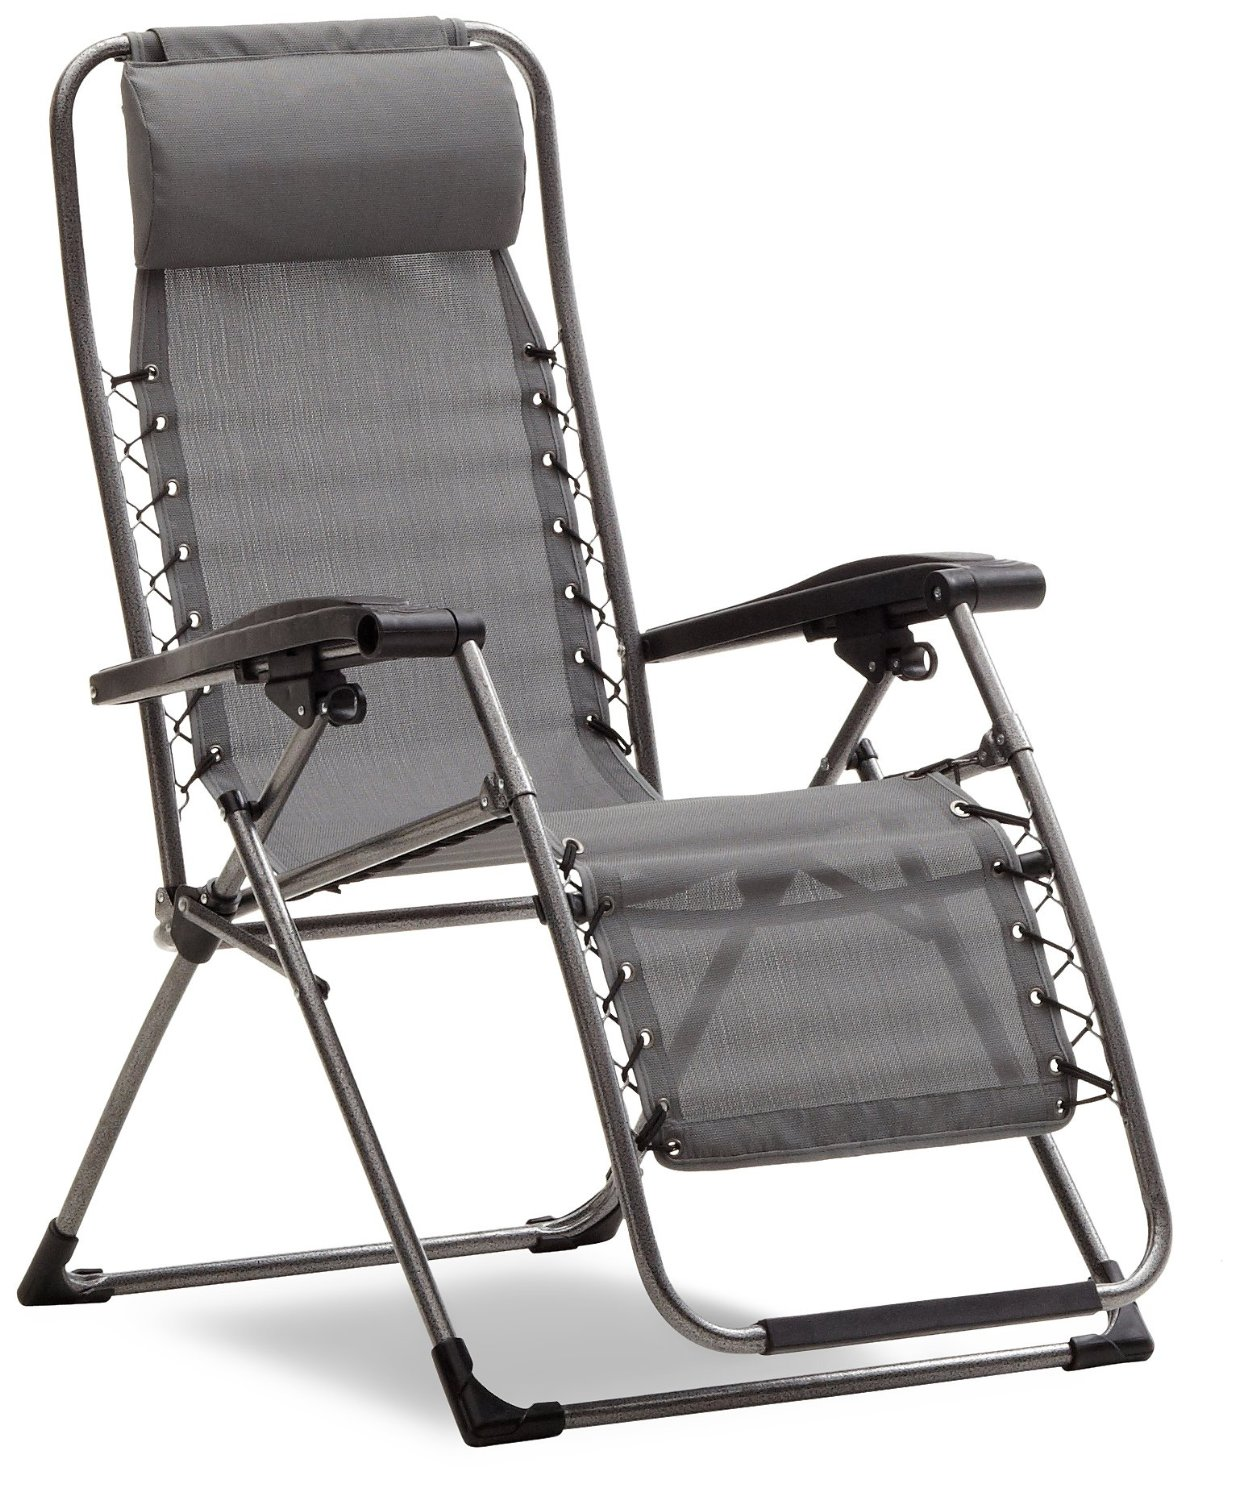 Anti Gravity Lounge Chair Strathwood Anti Gravity Adjustable Recliners 49 99 From